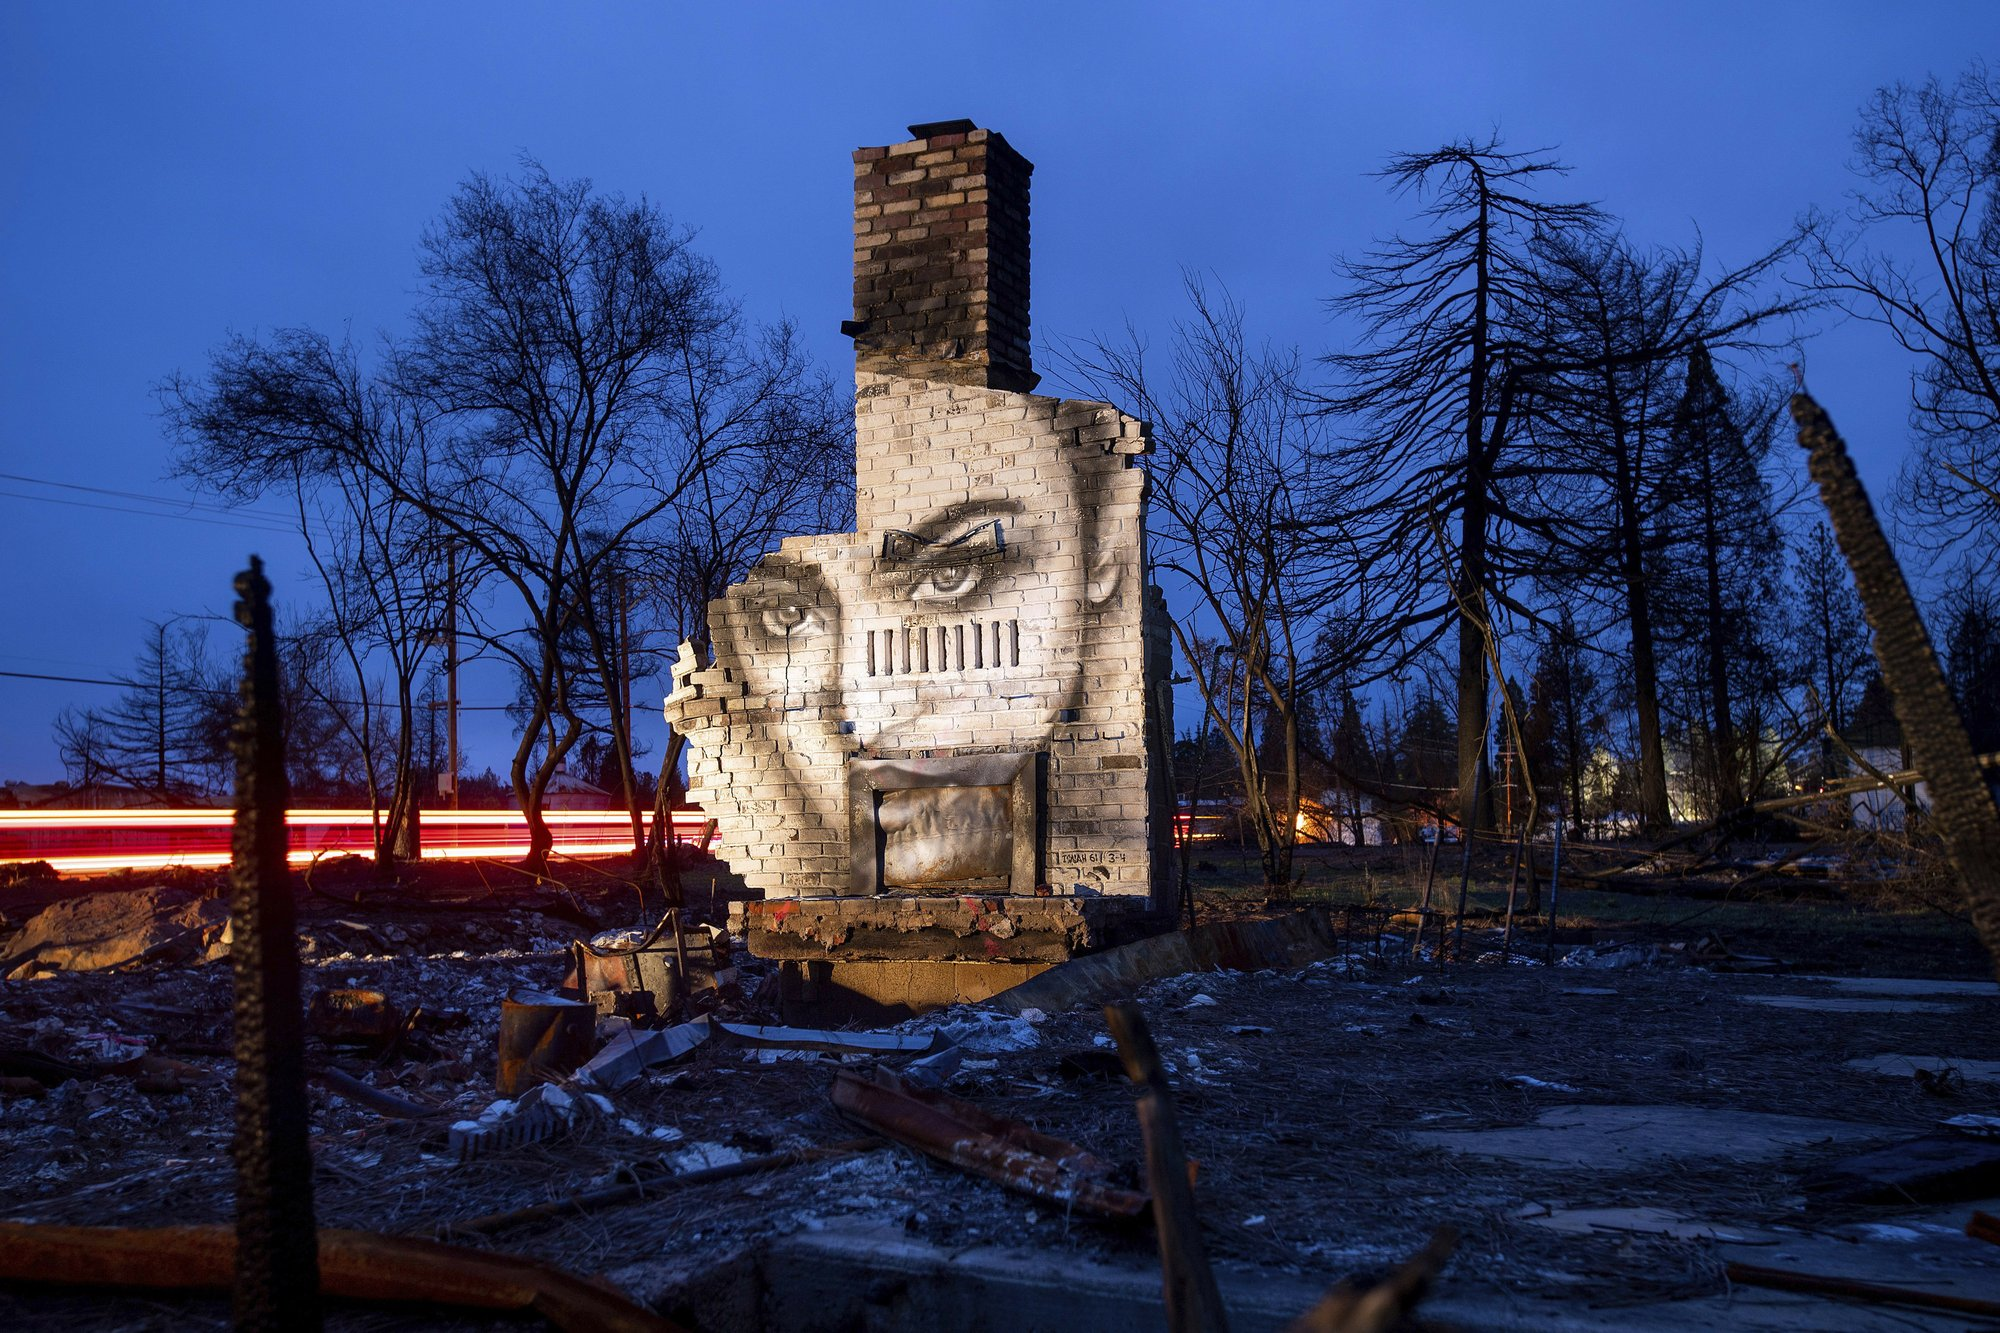 Photos: Artist transforms burned ruins in Paradise